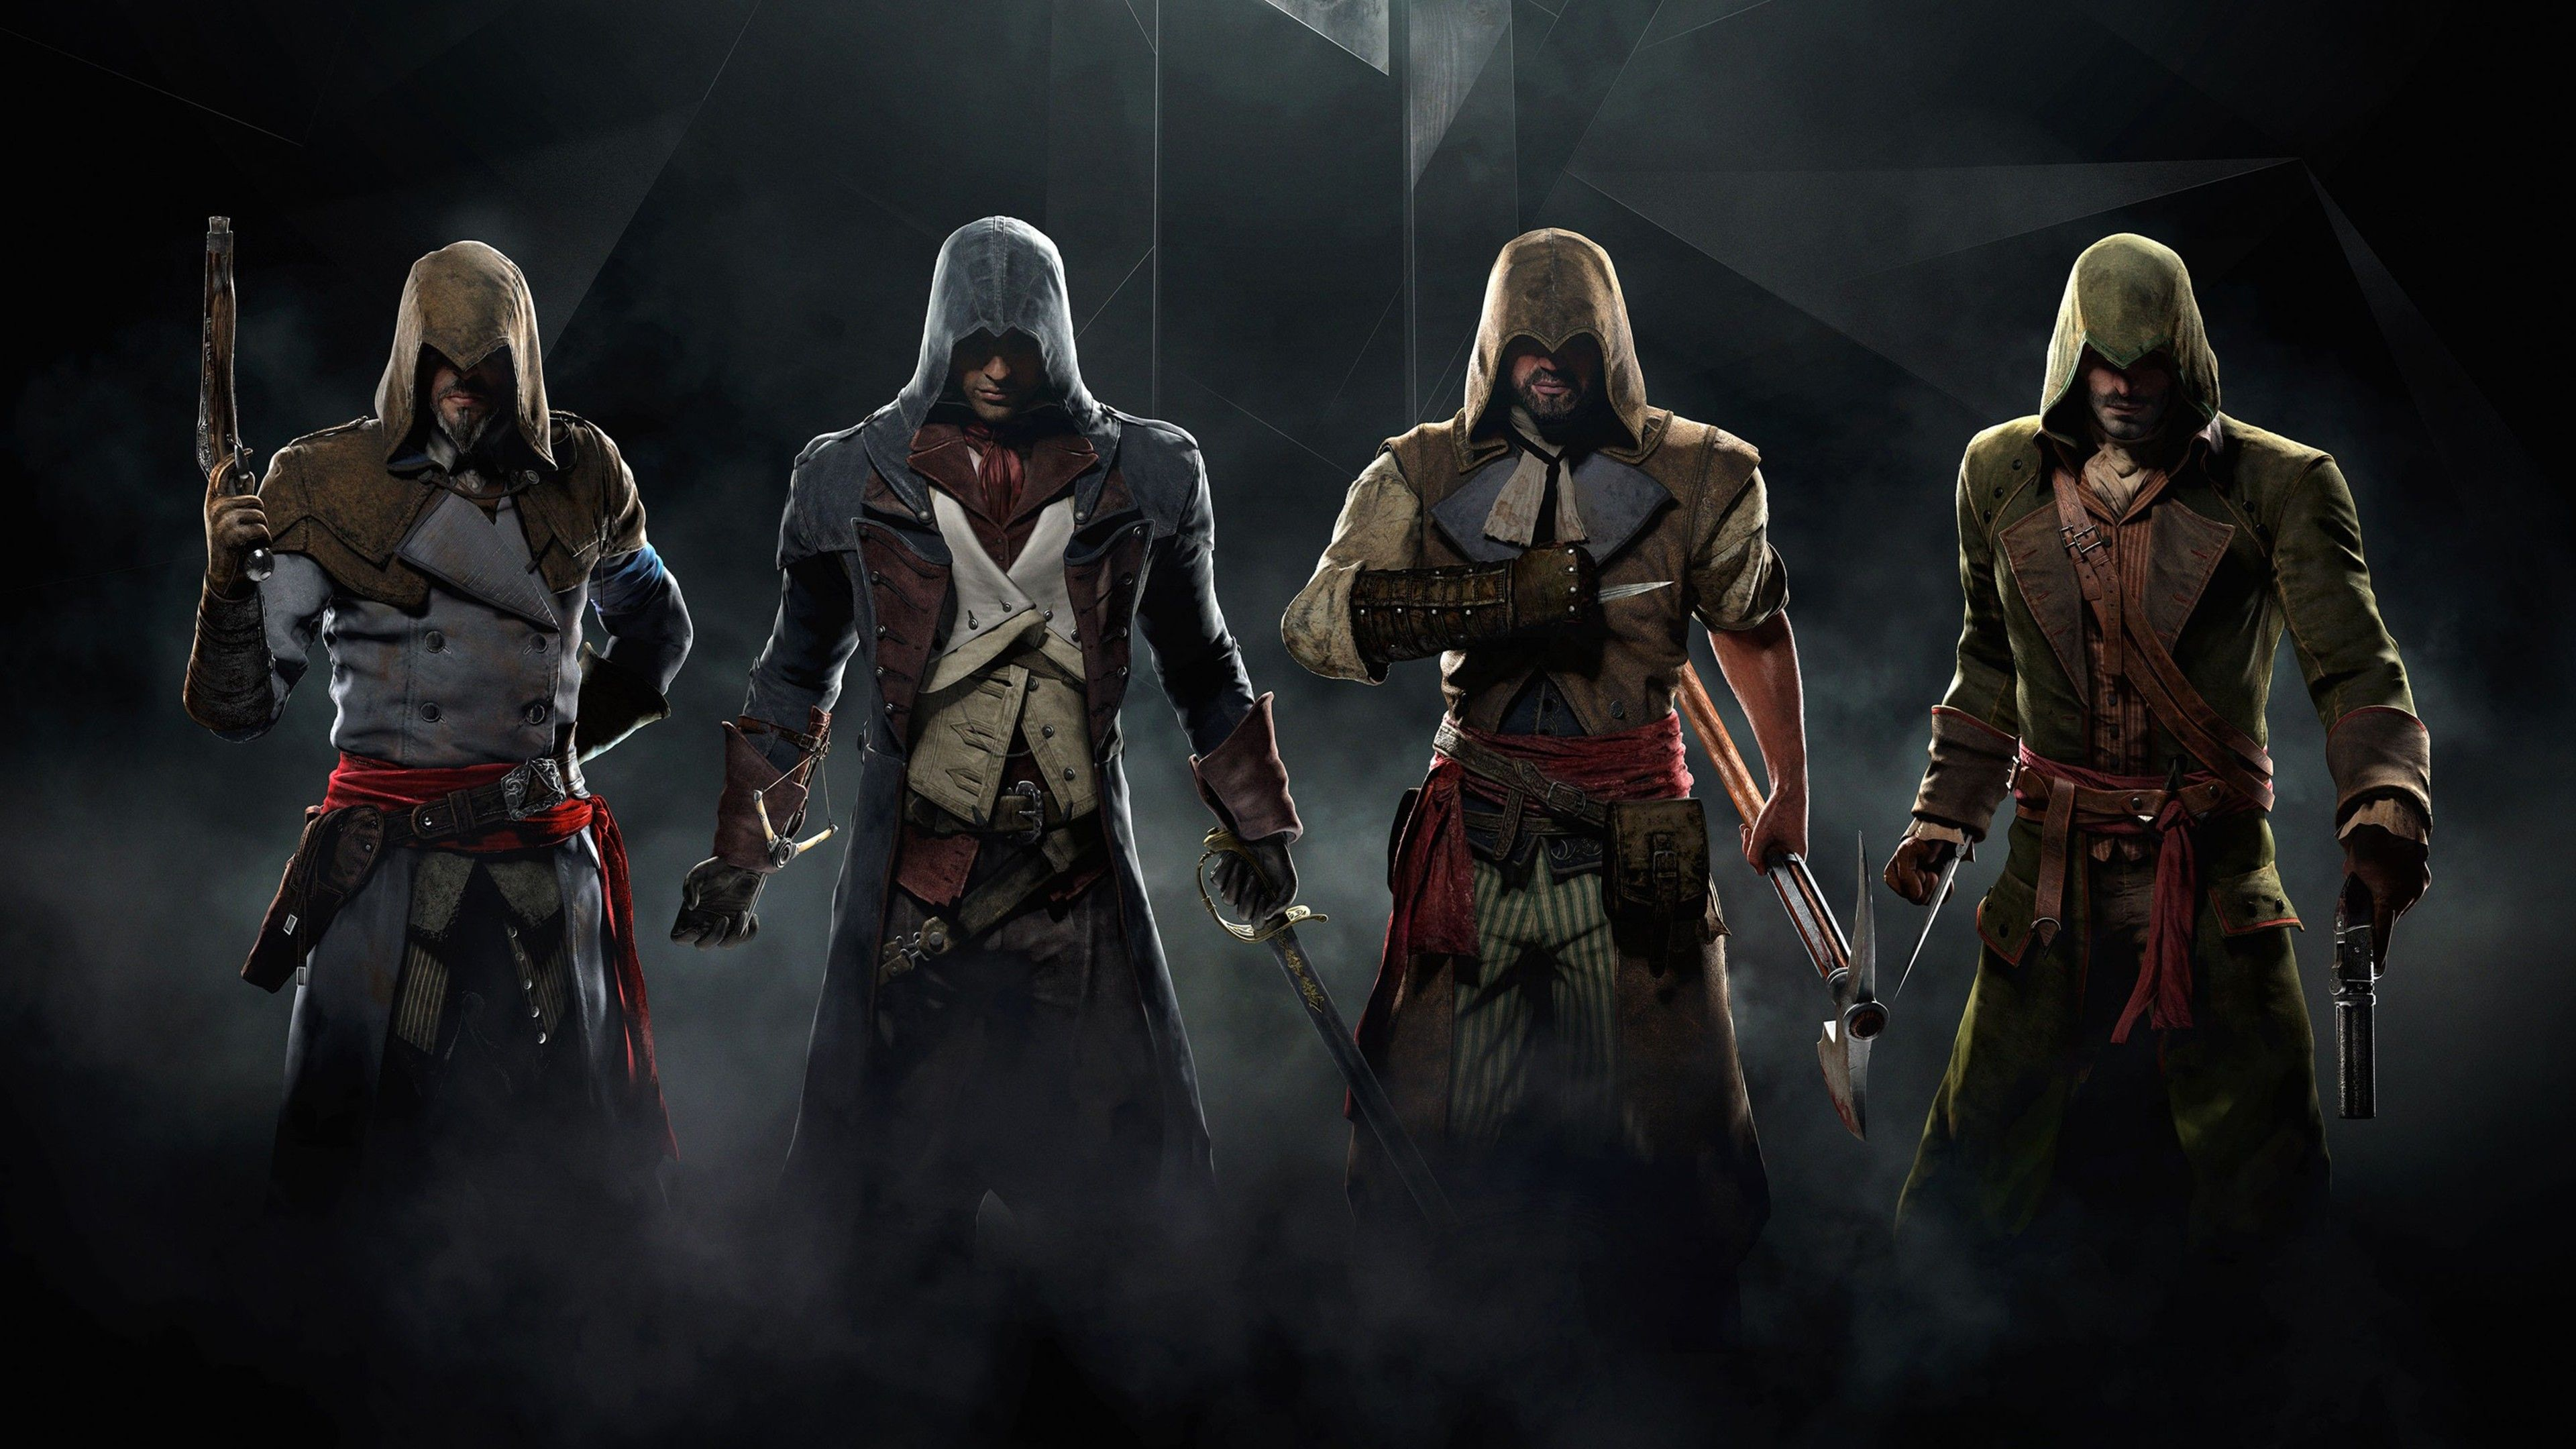 Assassins Creed Unity Game 4k Desktop Xbox Games Wallpapers Ps Games Wallpapers Pc Ga Best Assassin S Creed Assassin S Creed Unity Assassins Creed Unity Arno